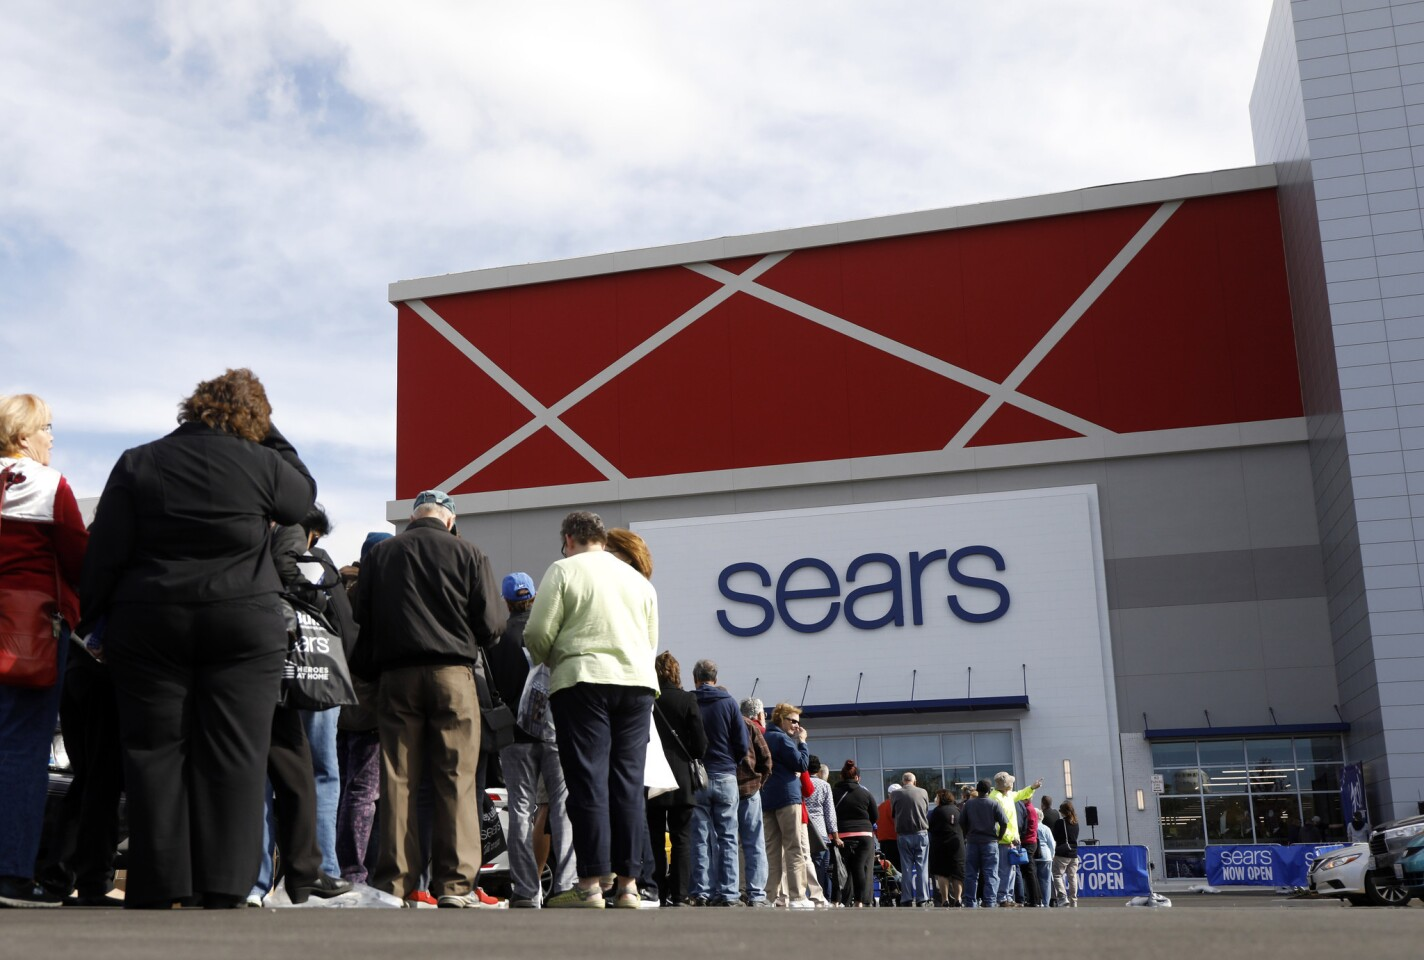 Customers line up for the re-opening event at a renovated Sears store, Oct. 4, 2018 at Oakbrook Center.